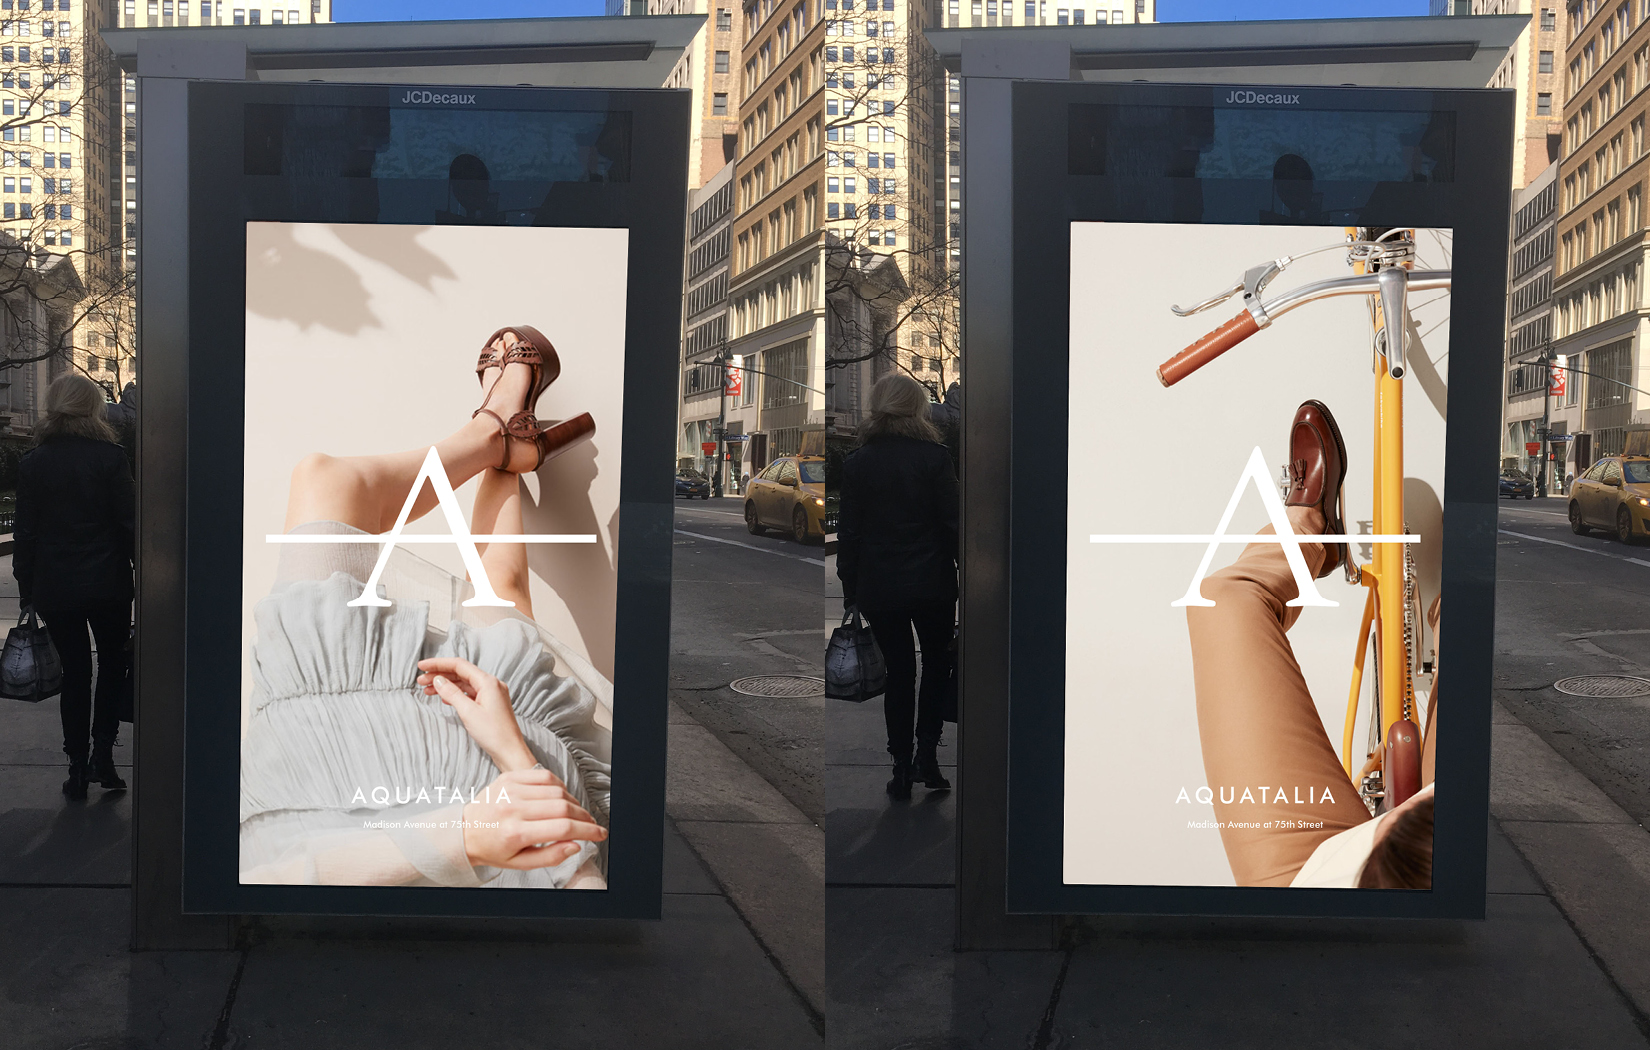 Aquatalia print campaign on New York City bus stops by DTE.